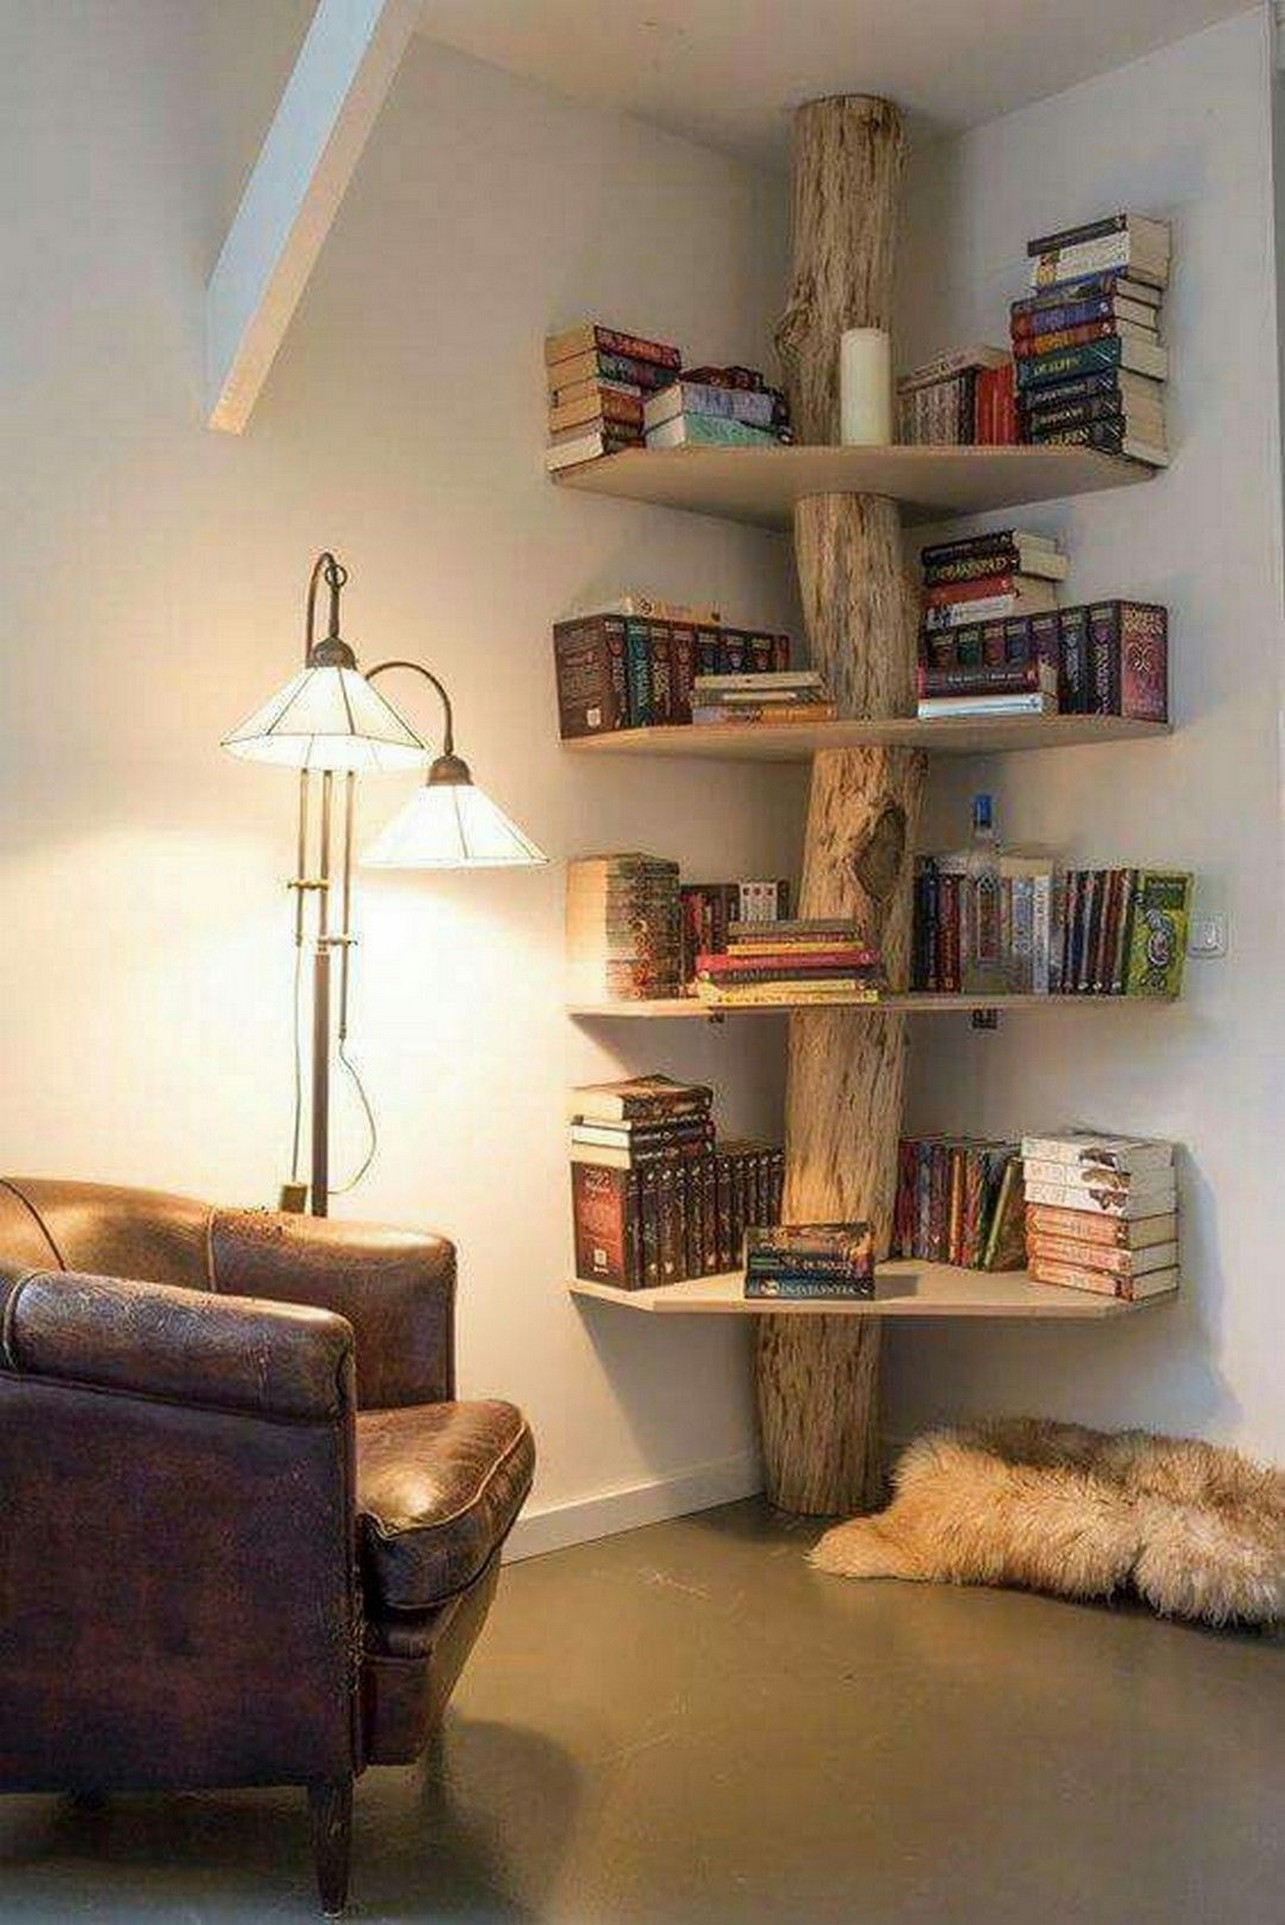 67 Rustic Home Decorating Ideas In 2020 Home Decor 20